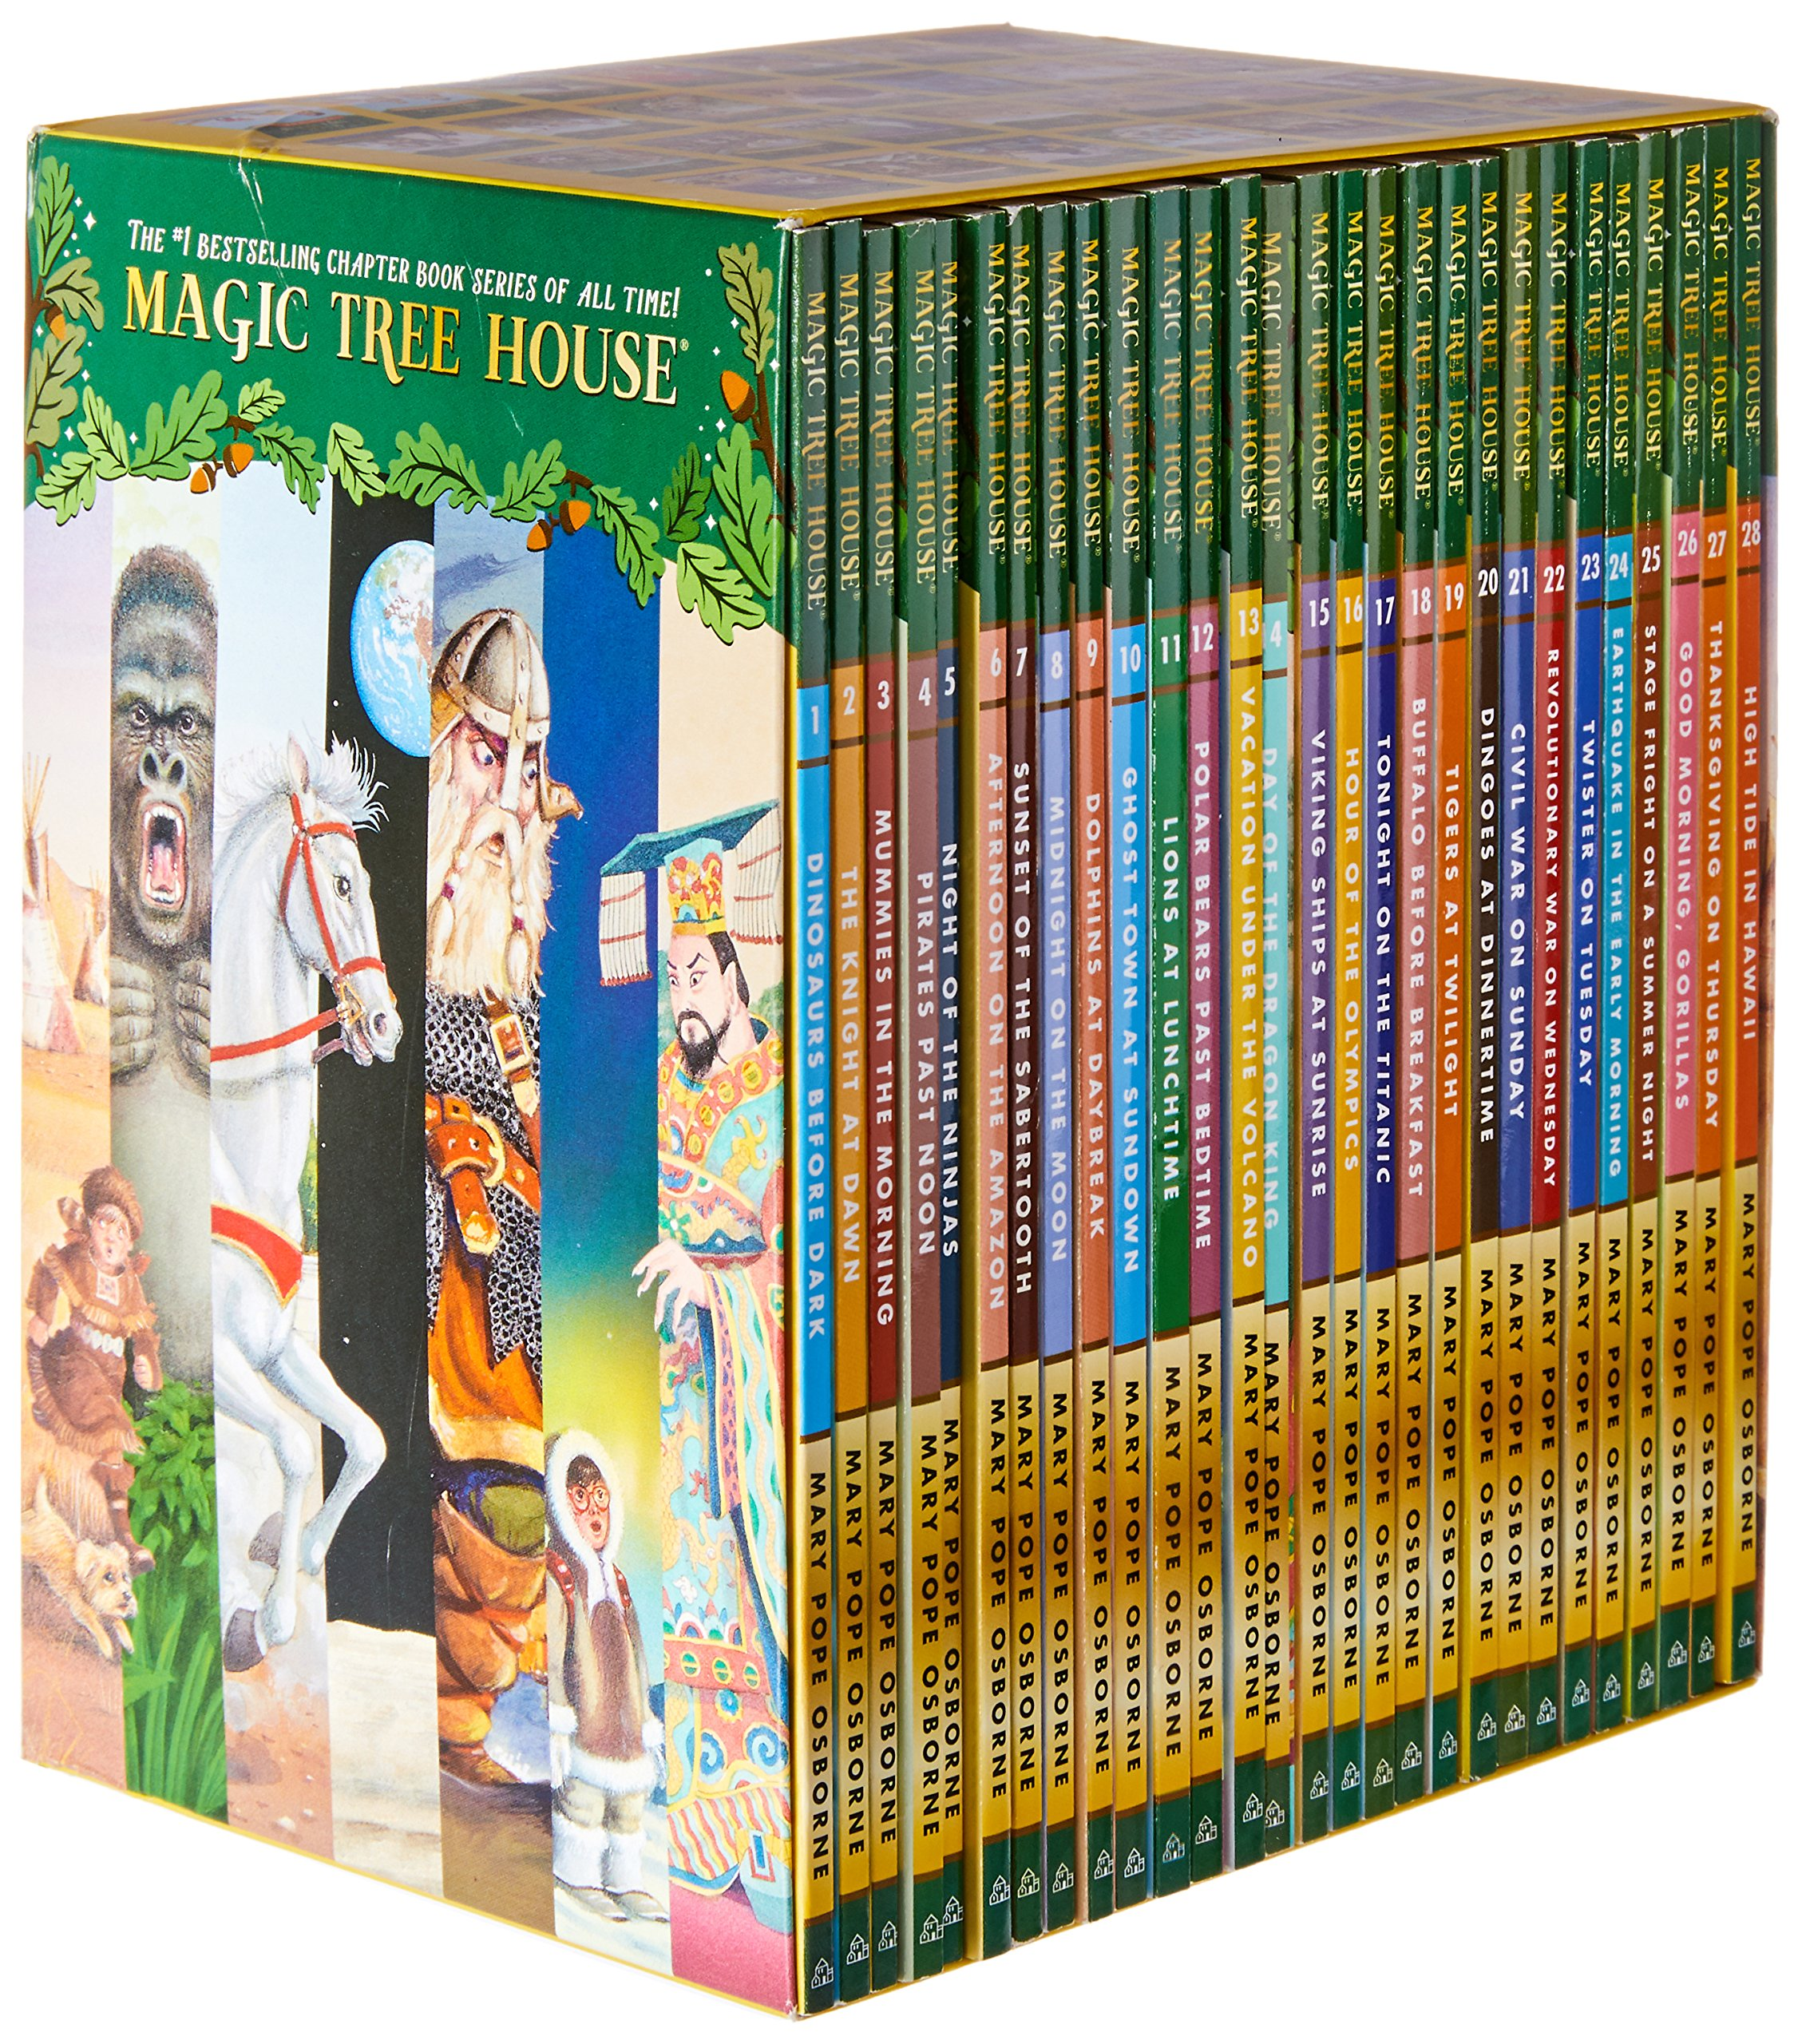 Image result for magic tree house amazon""